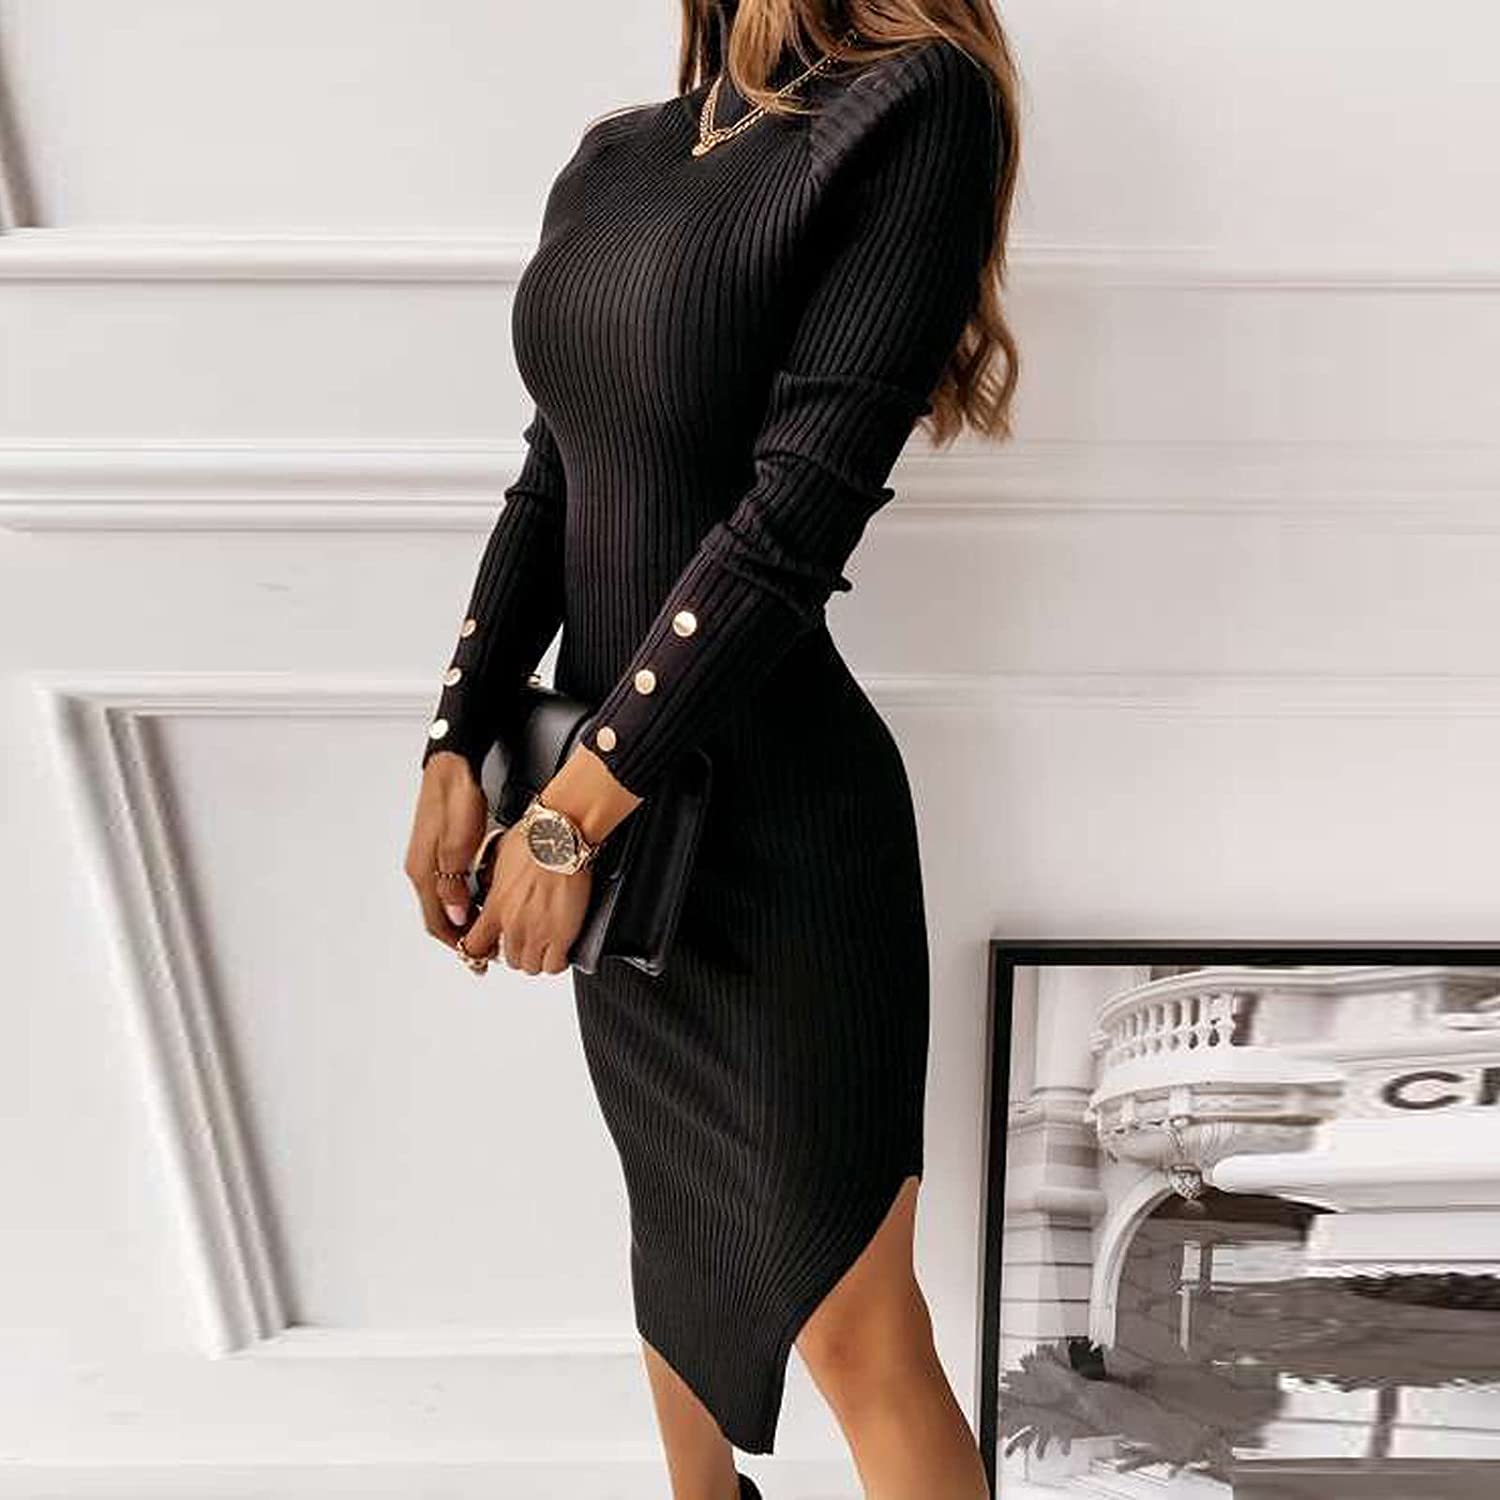 Bobono Sexy Dresses for Women Turtle Neck Cutout Backless Long Sleeve Solid Color Ribbed Slit Trendy Casual Fall Club Dress